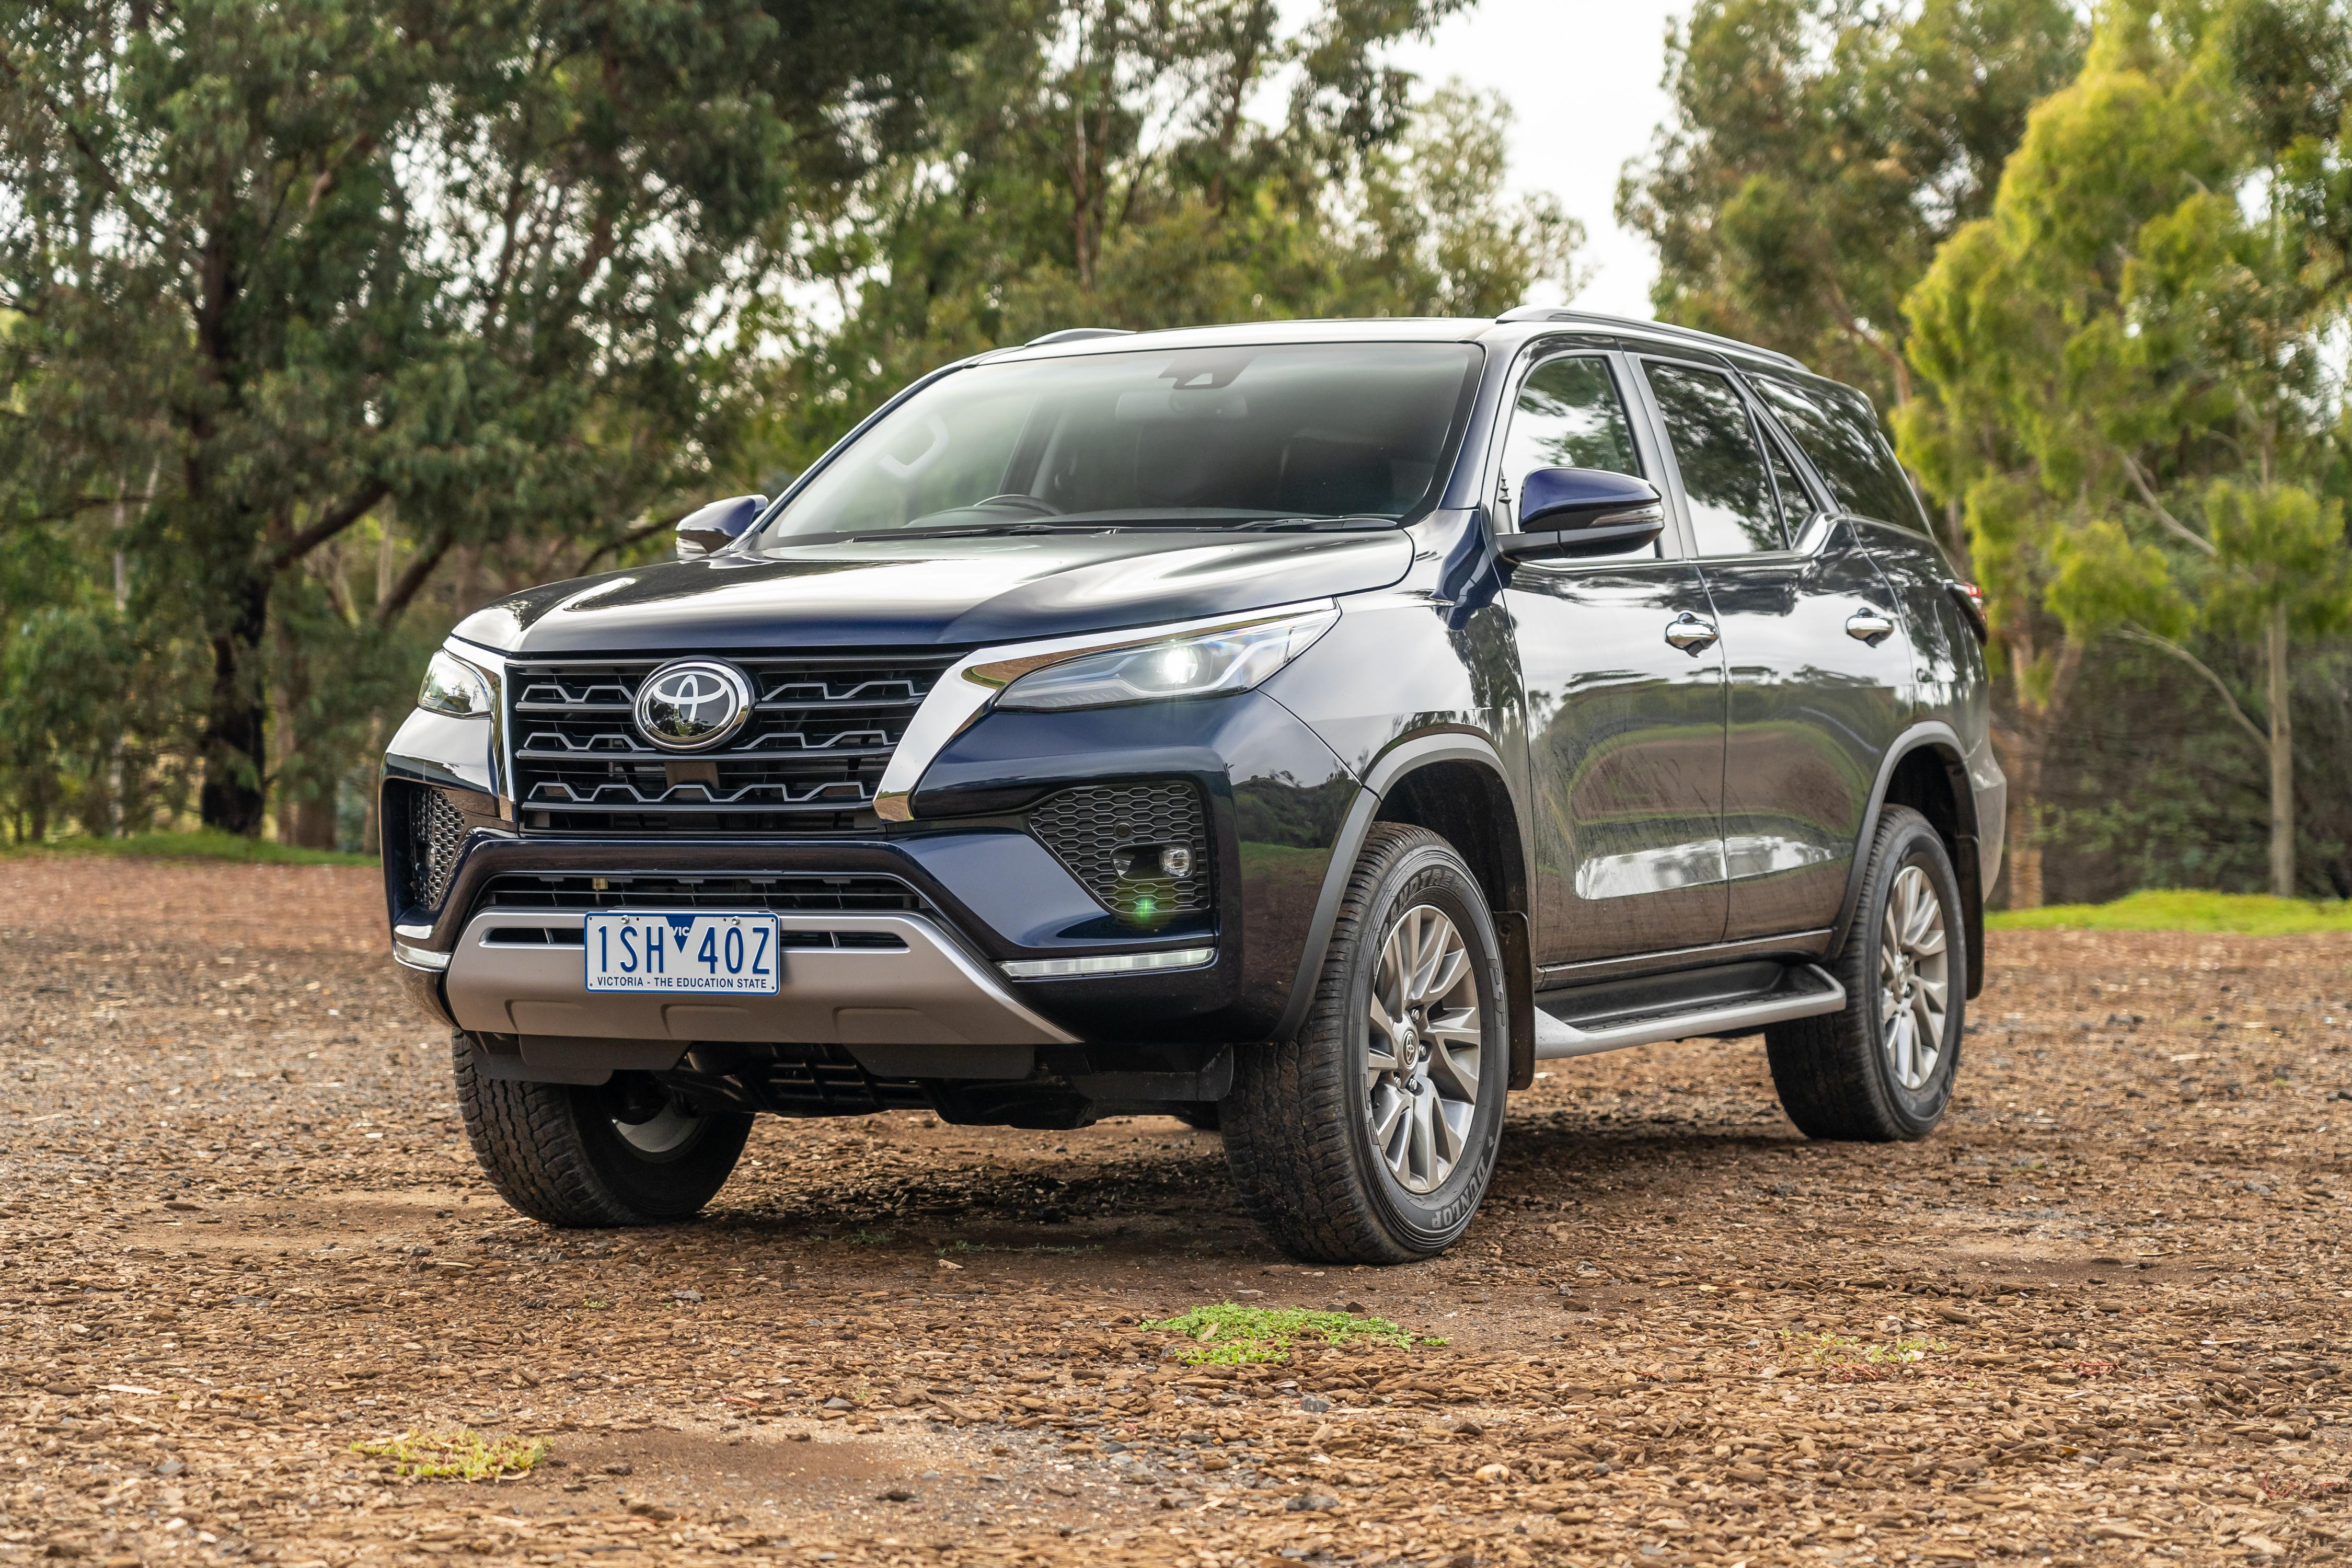 2022 Toyota Fortuner price and specs